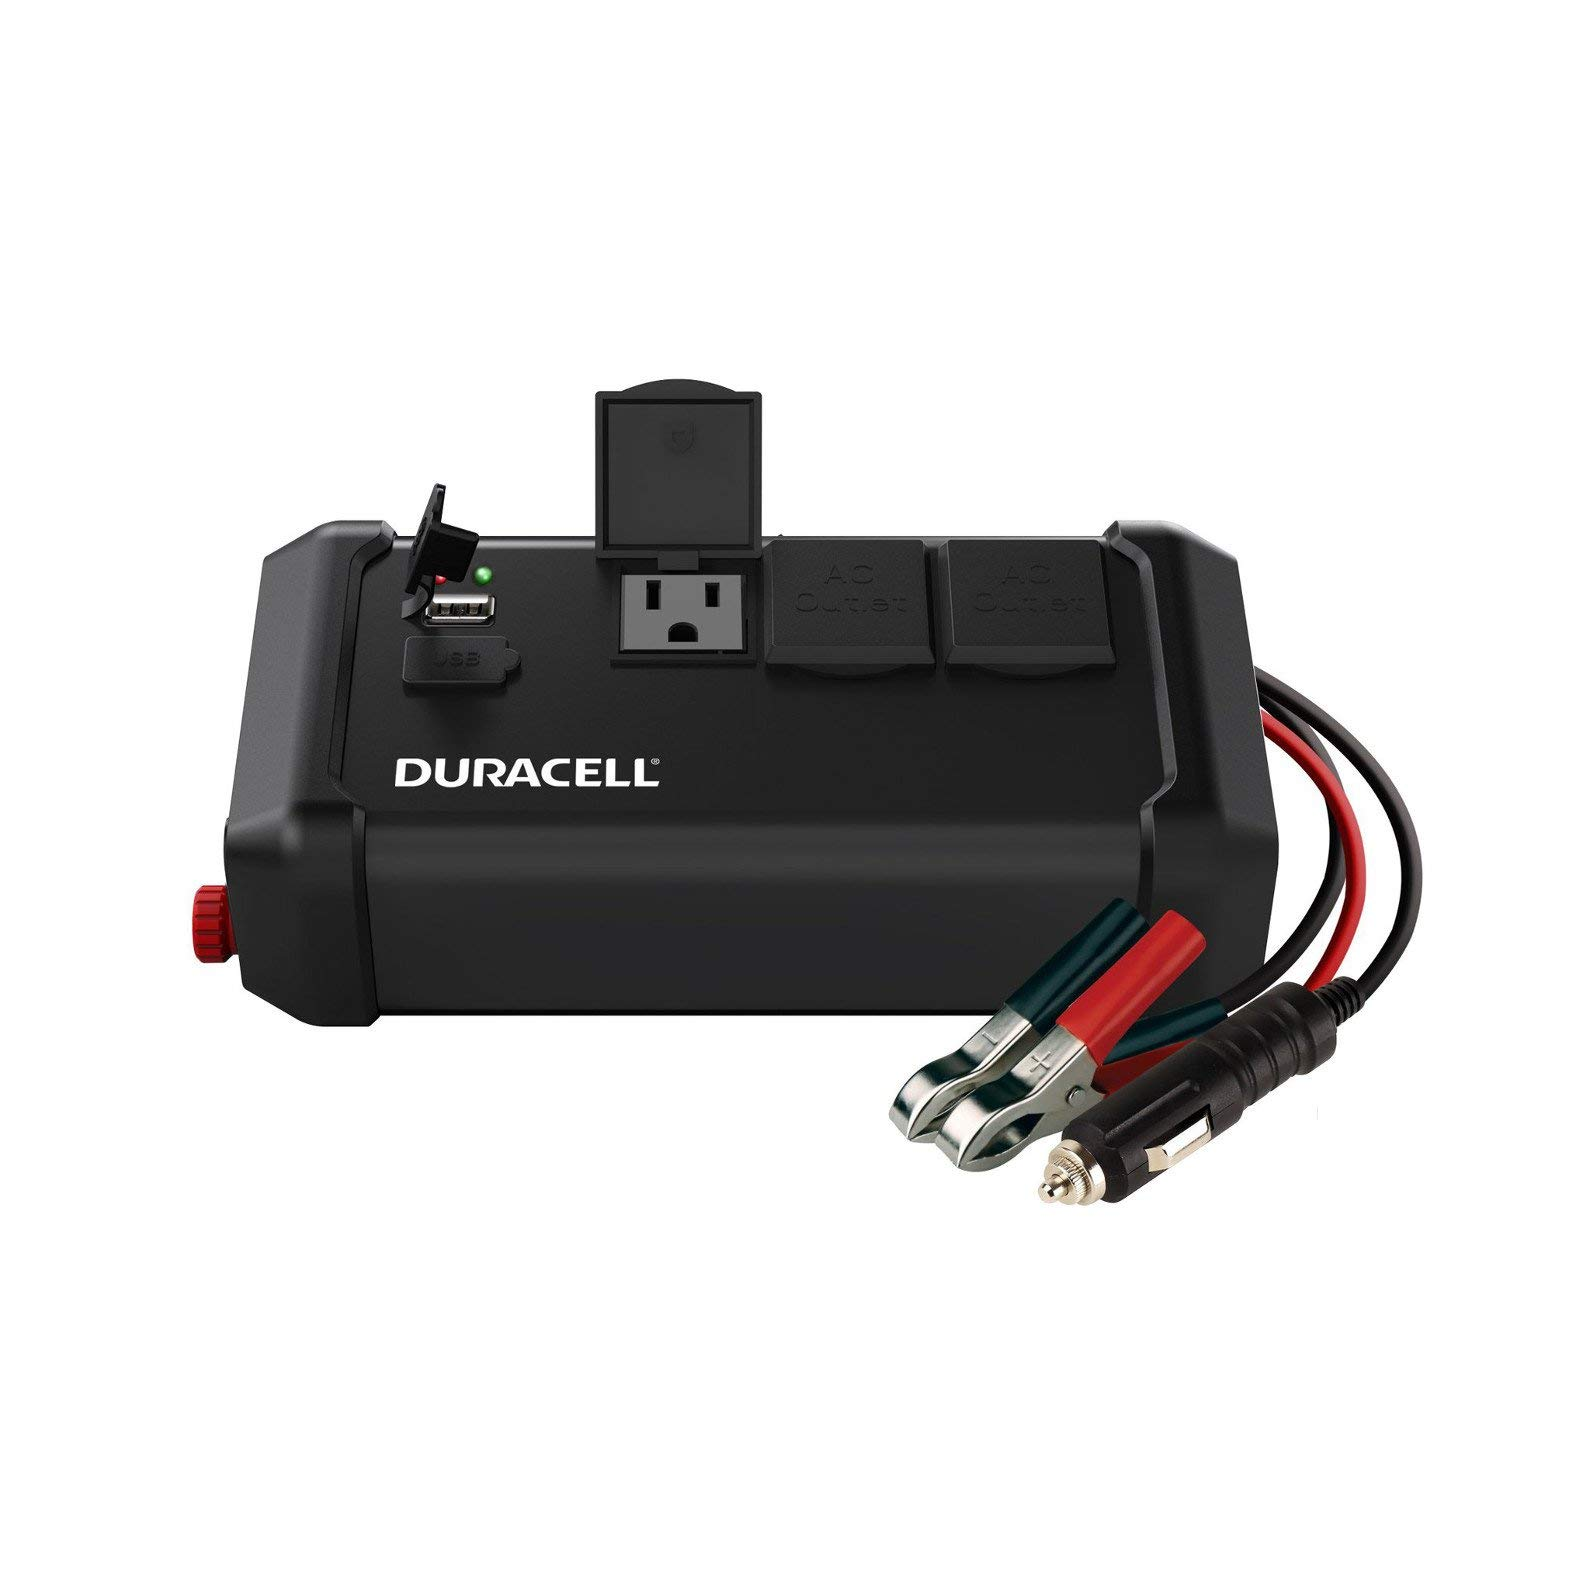 Duracell DRINV400 High Power Tailgate Inverter 400 Watt Peak 320W Continuous, 12v DC Input Includes 2 AC Outlets (115V) Plus 2.4 Amp USB (5V) (Renewed)